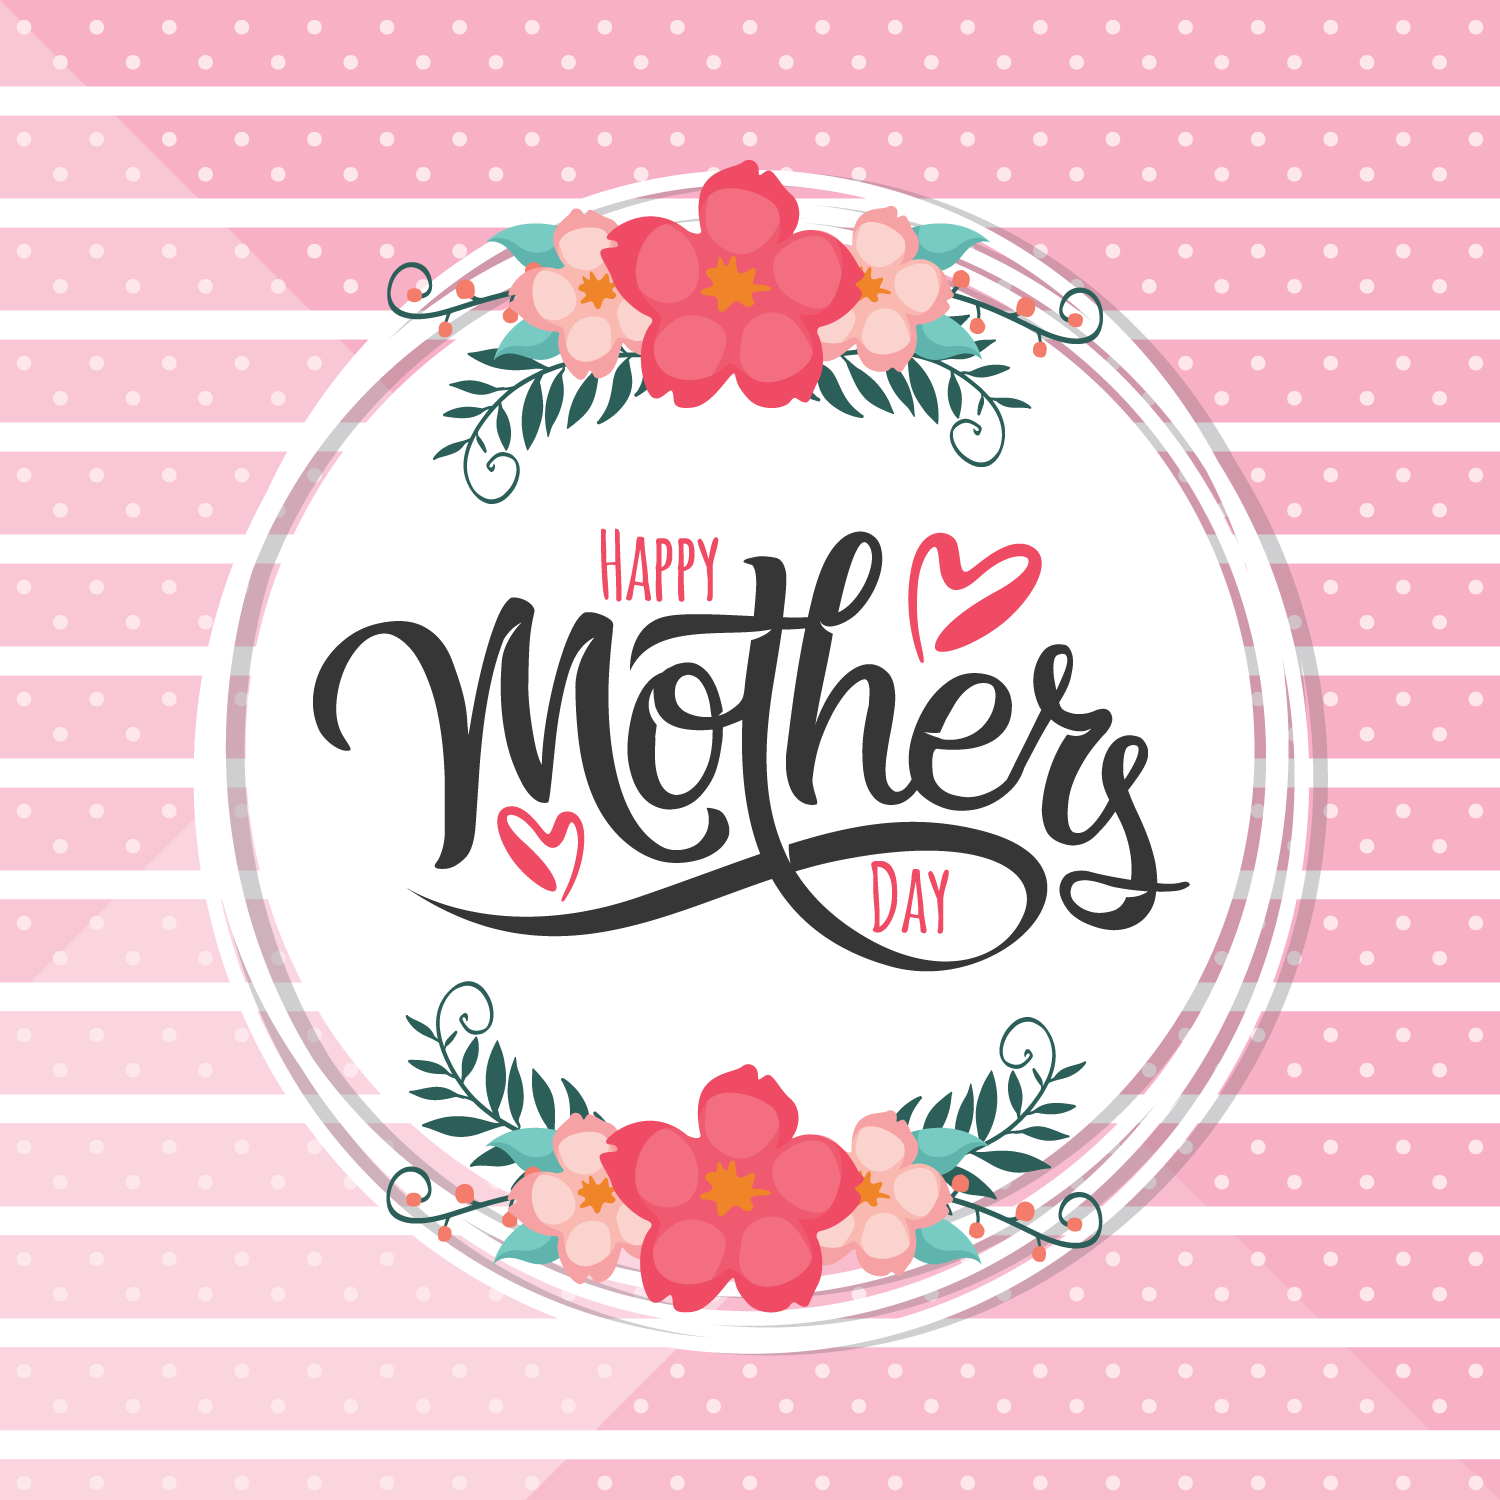 mothers day inspired vouchers - HD1500×1500